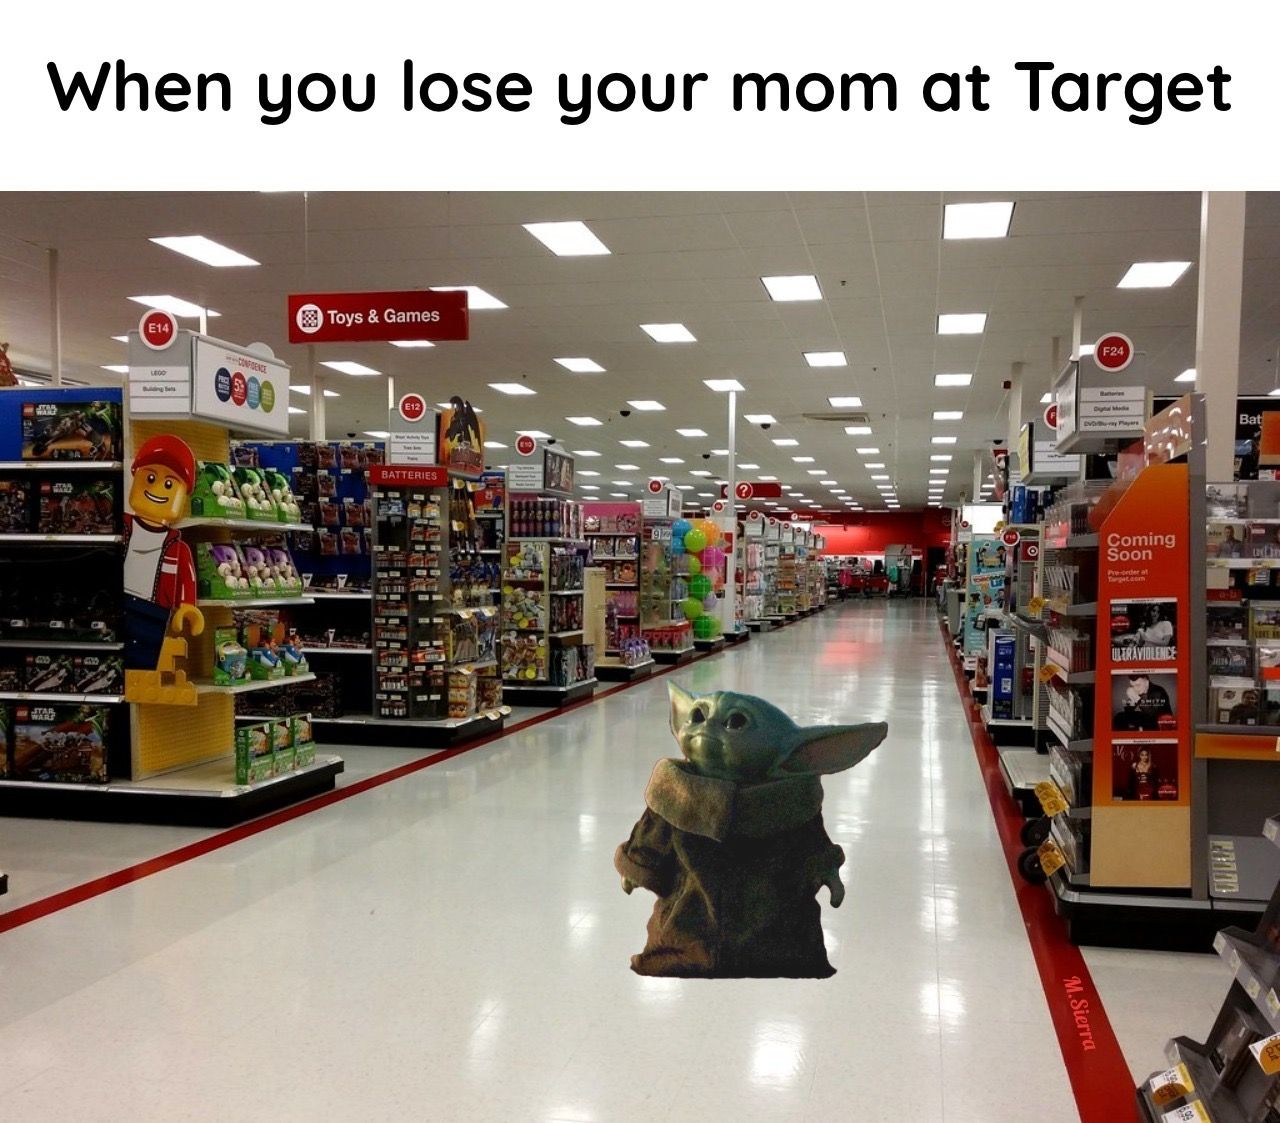 Pin By Jason Campbell On Geek Pics For The Geek In Us All Yoda Meme Target Toys Yoda